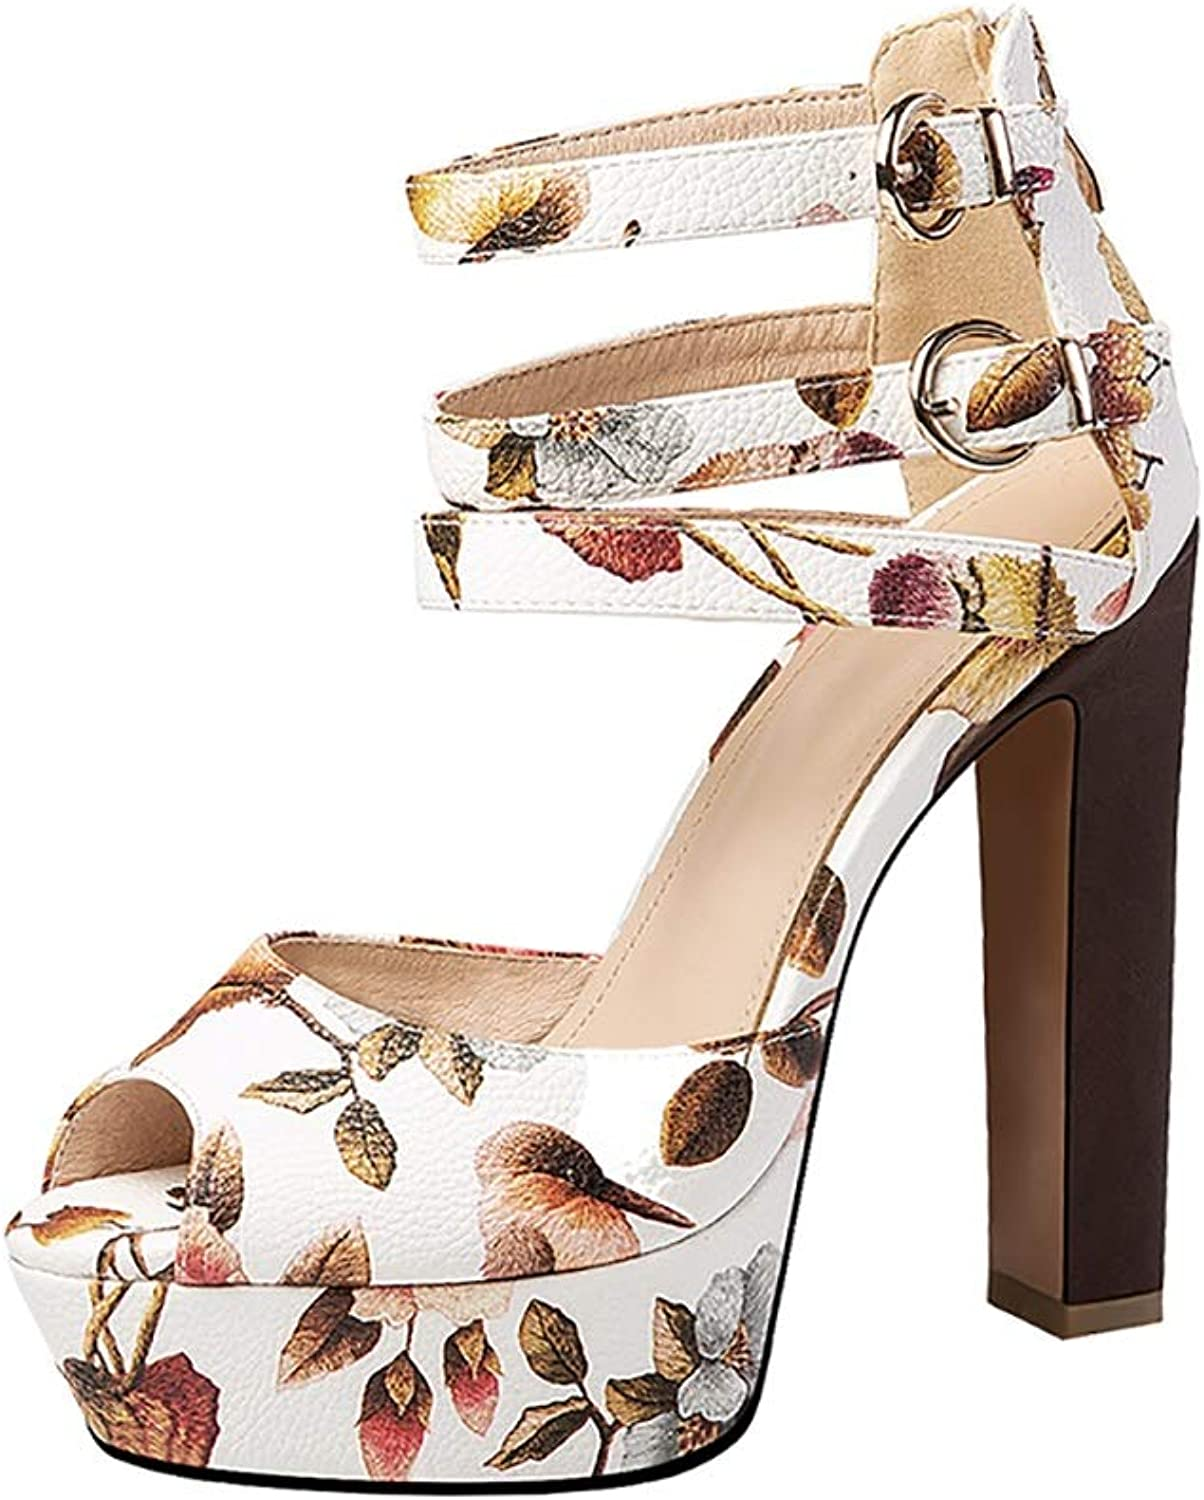 Women's Sandals, Thin Belt Roman Buckle High-Heeled Fish Mouth shoes Sweet Dress shoes (color   White, Size   8 US)